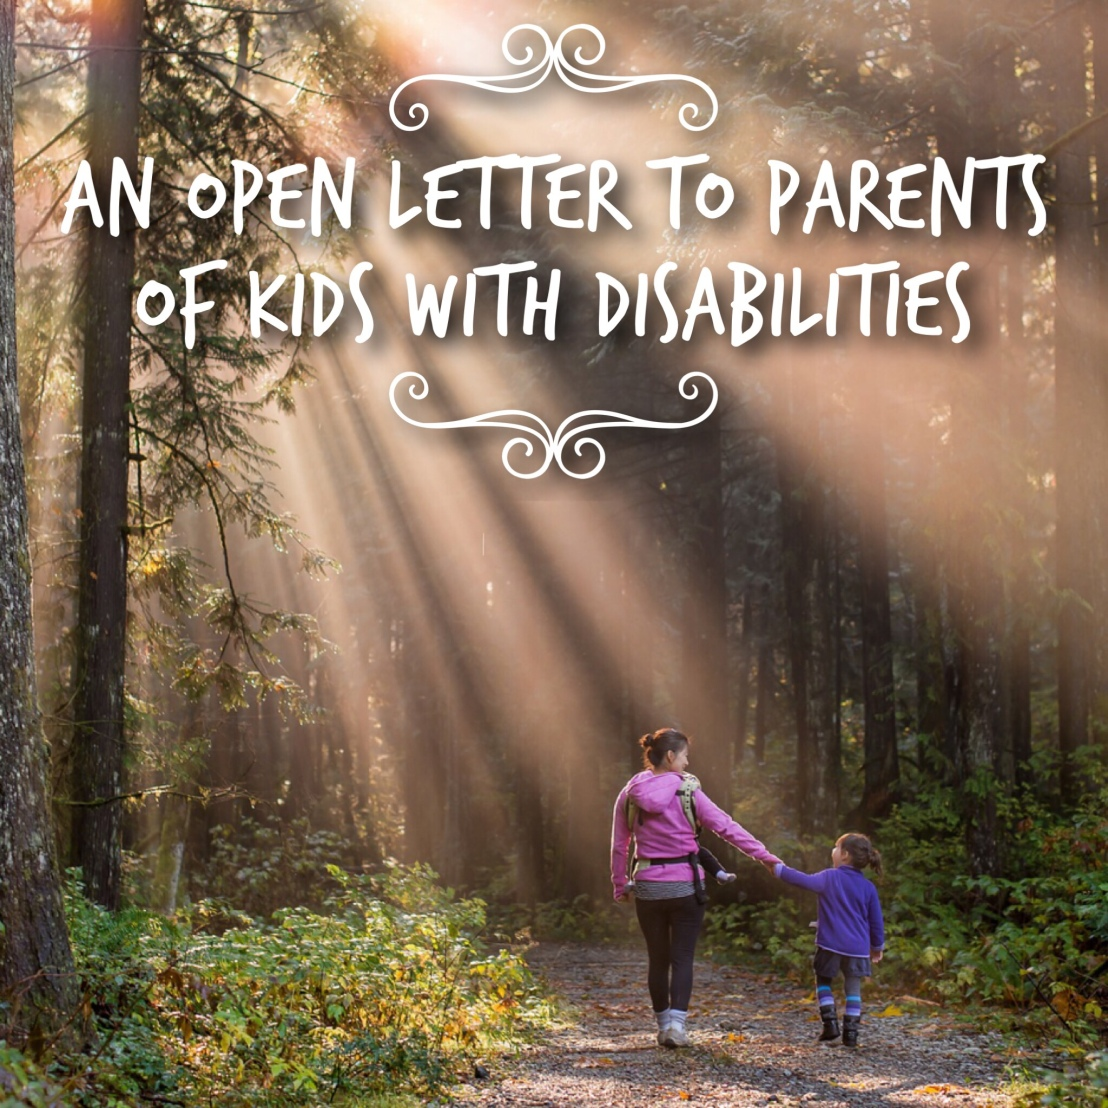 An Open Letter to Parents and Caregivers